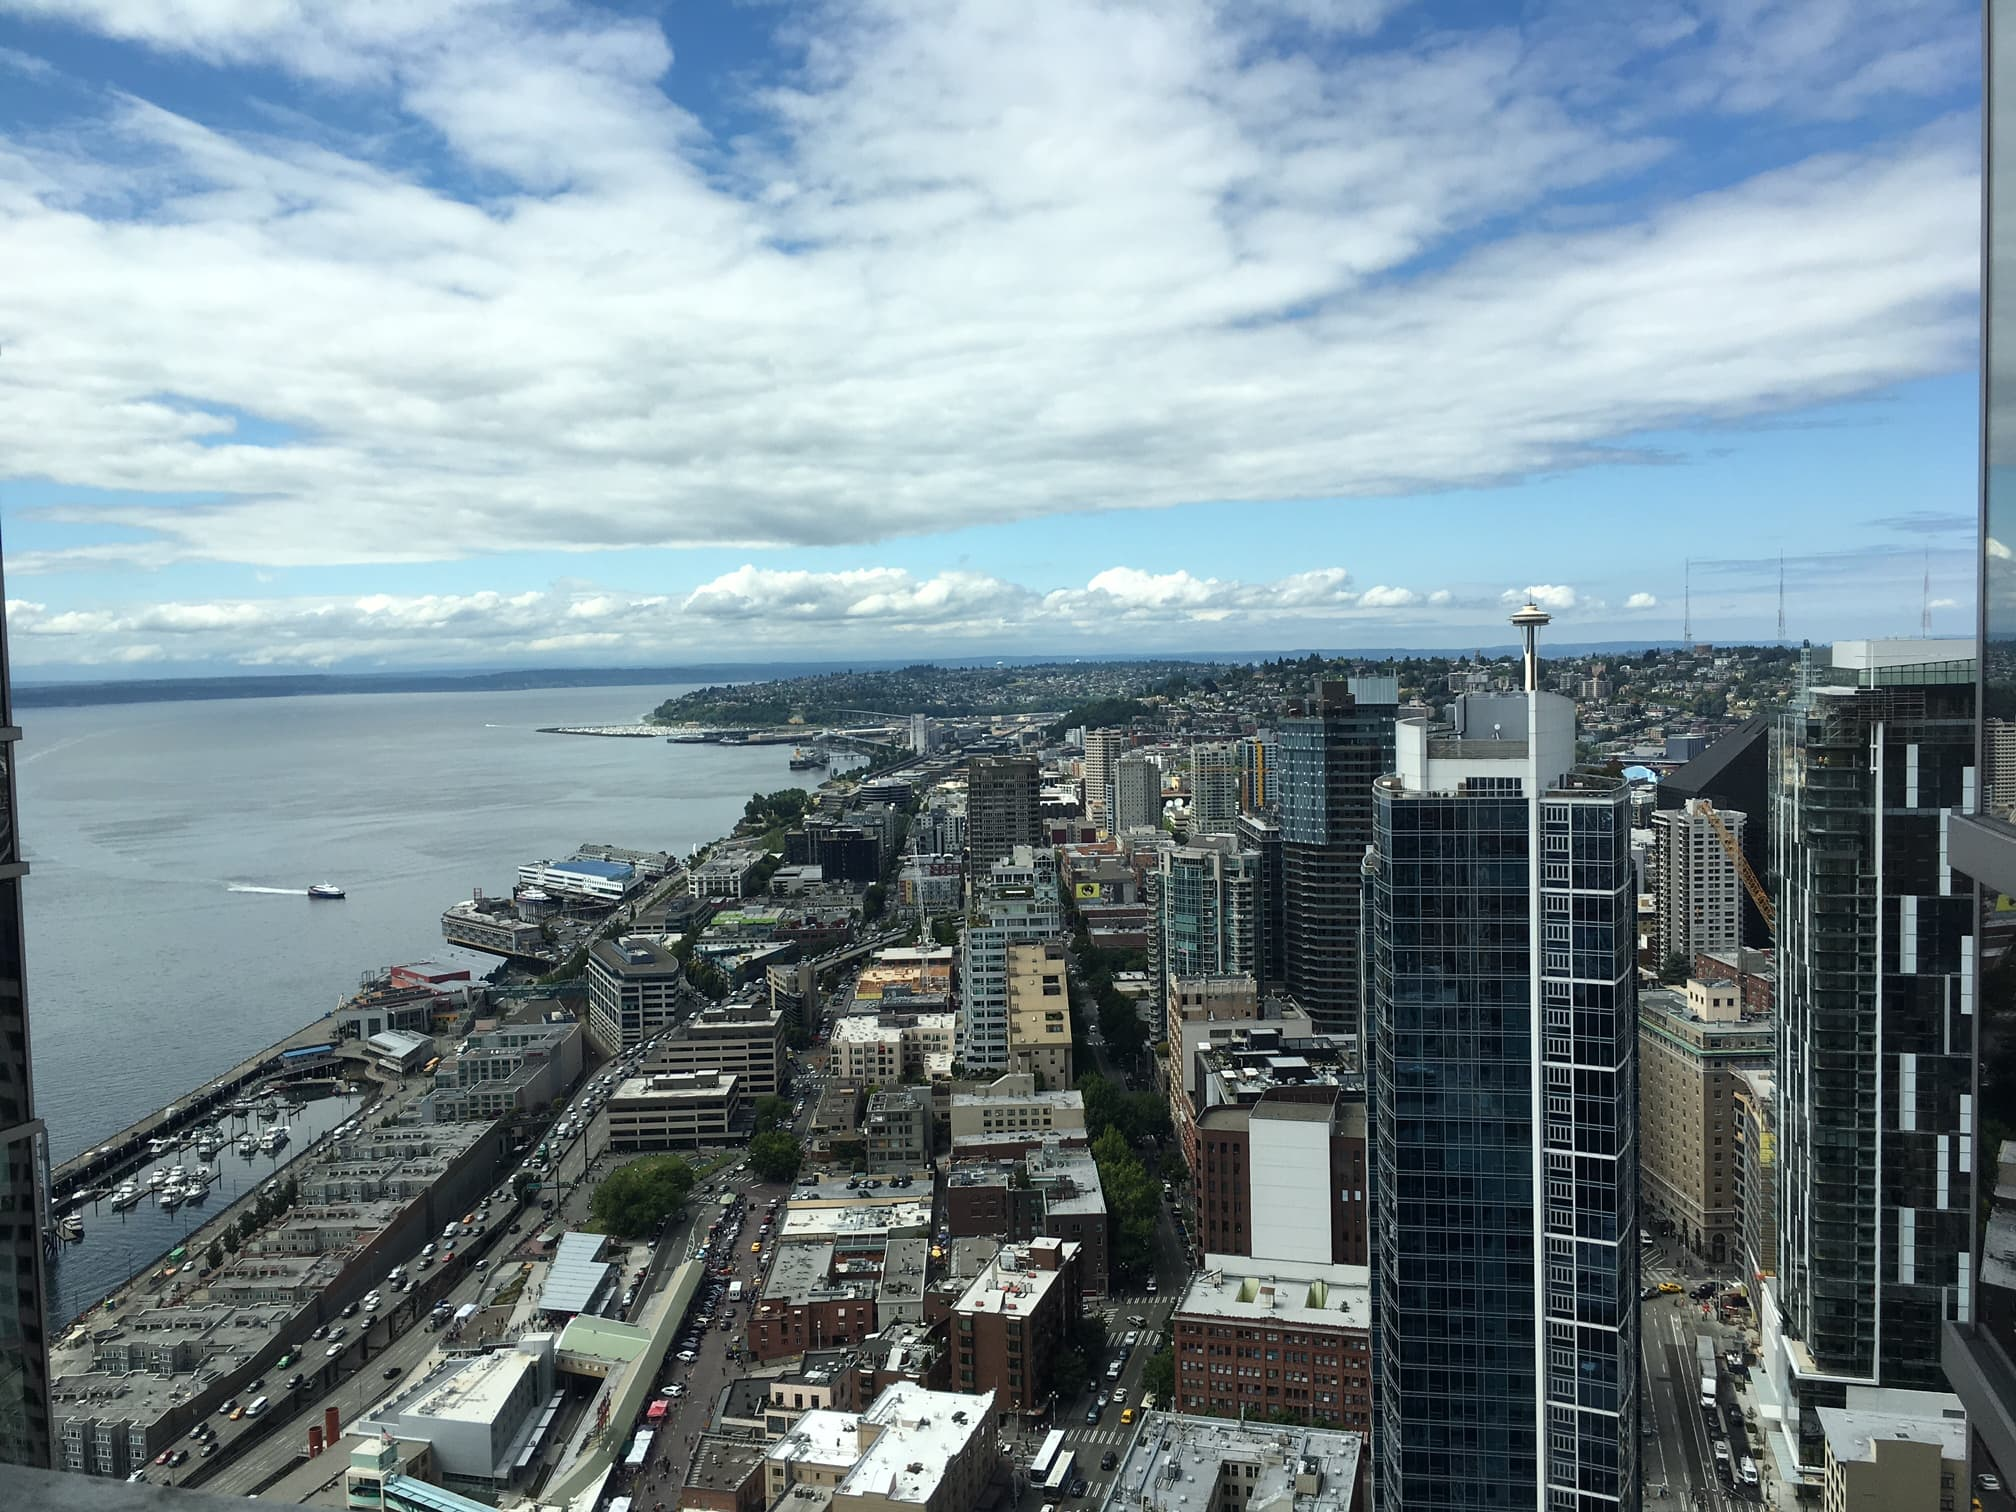 View from the Zillow Office